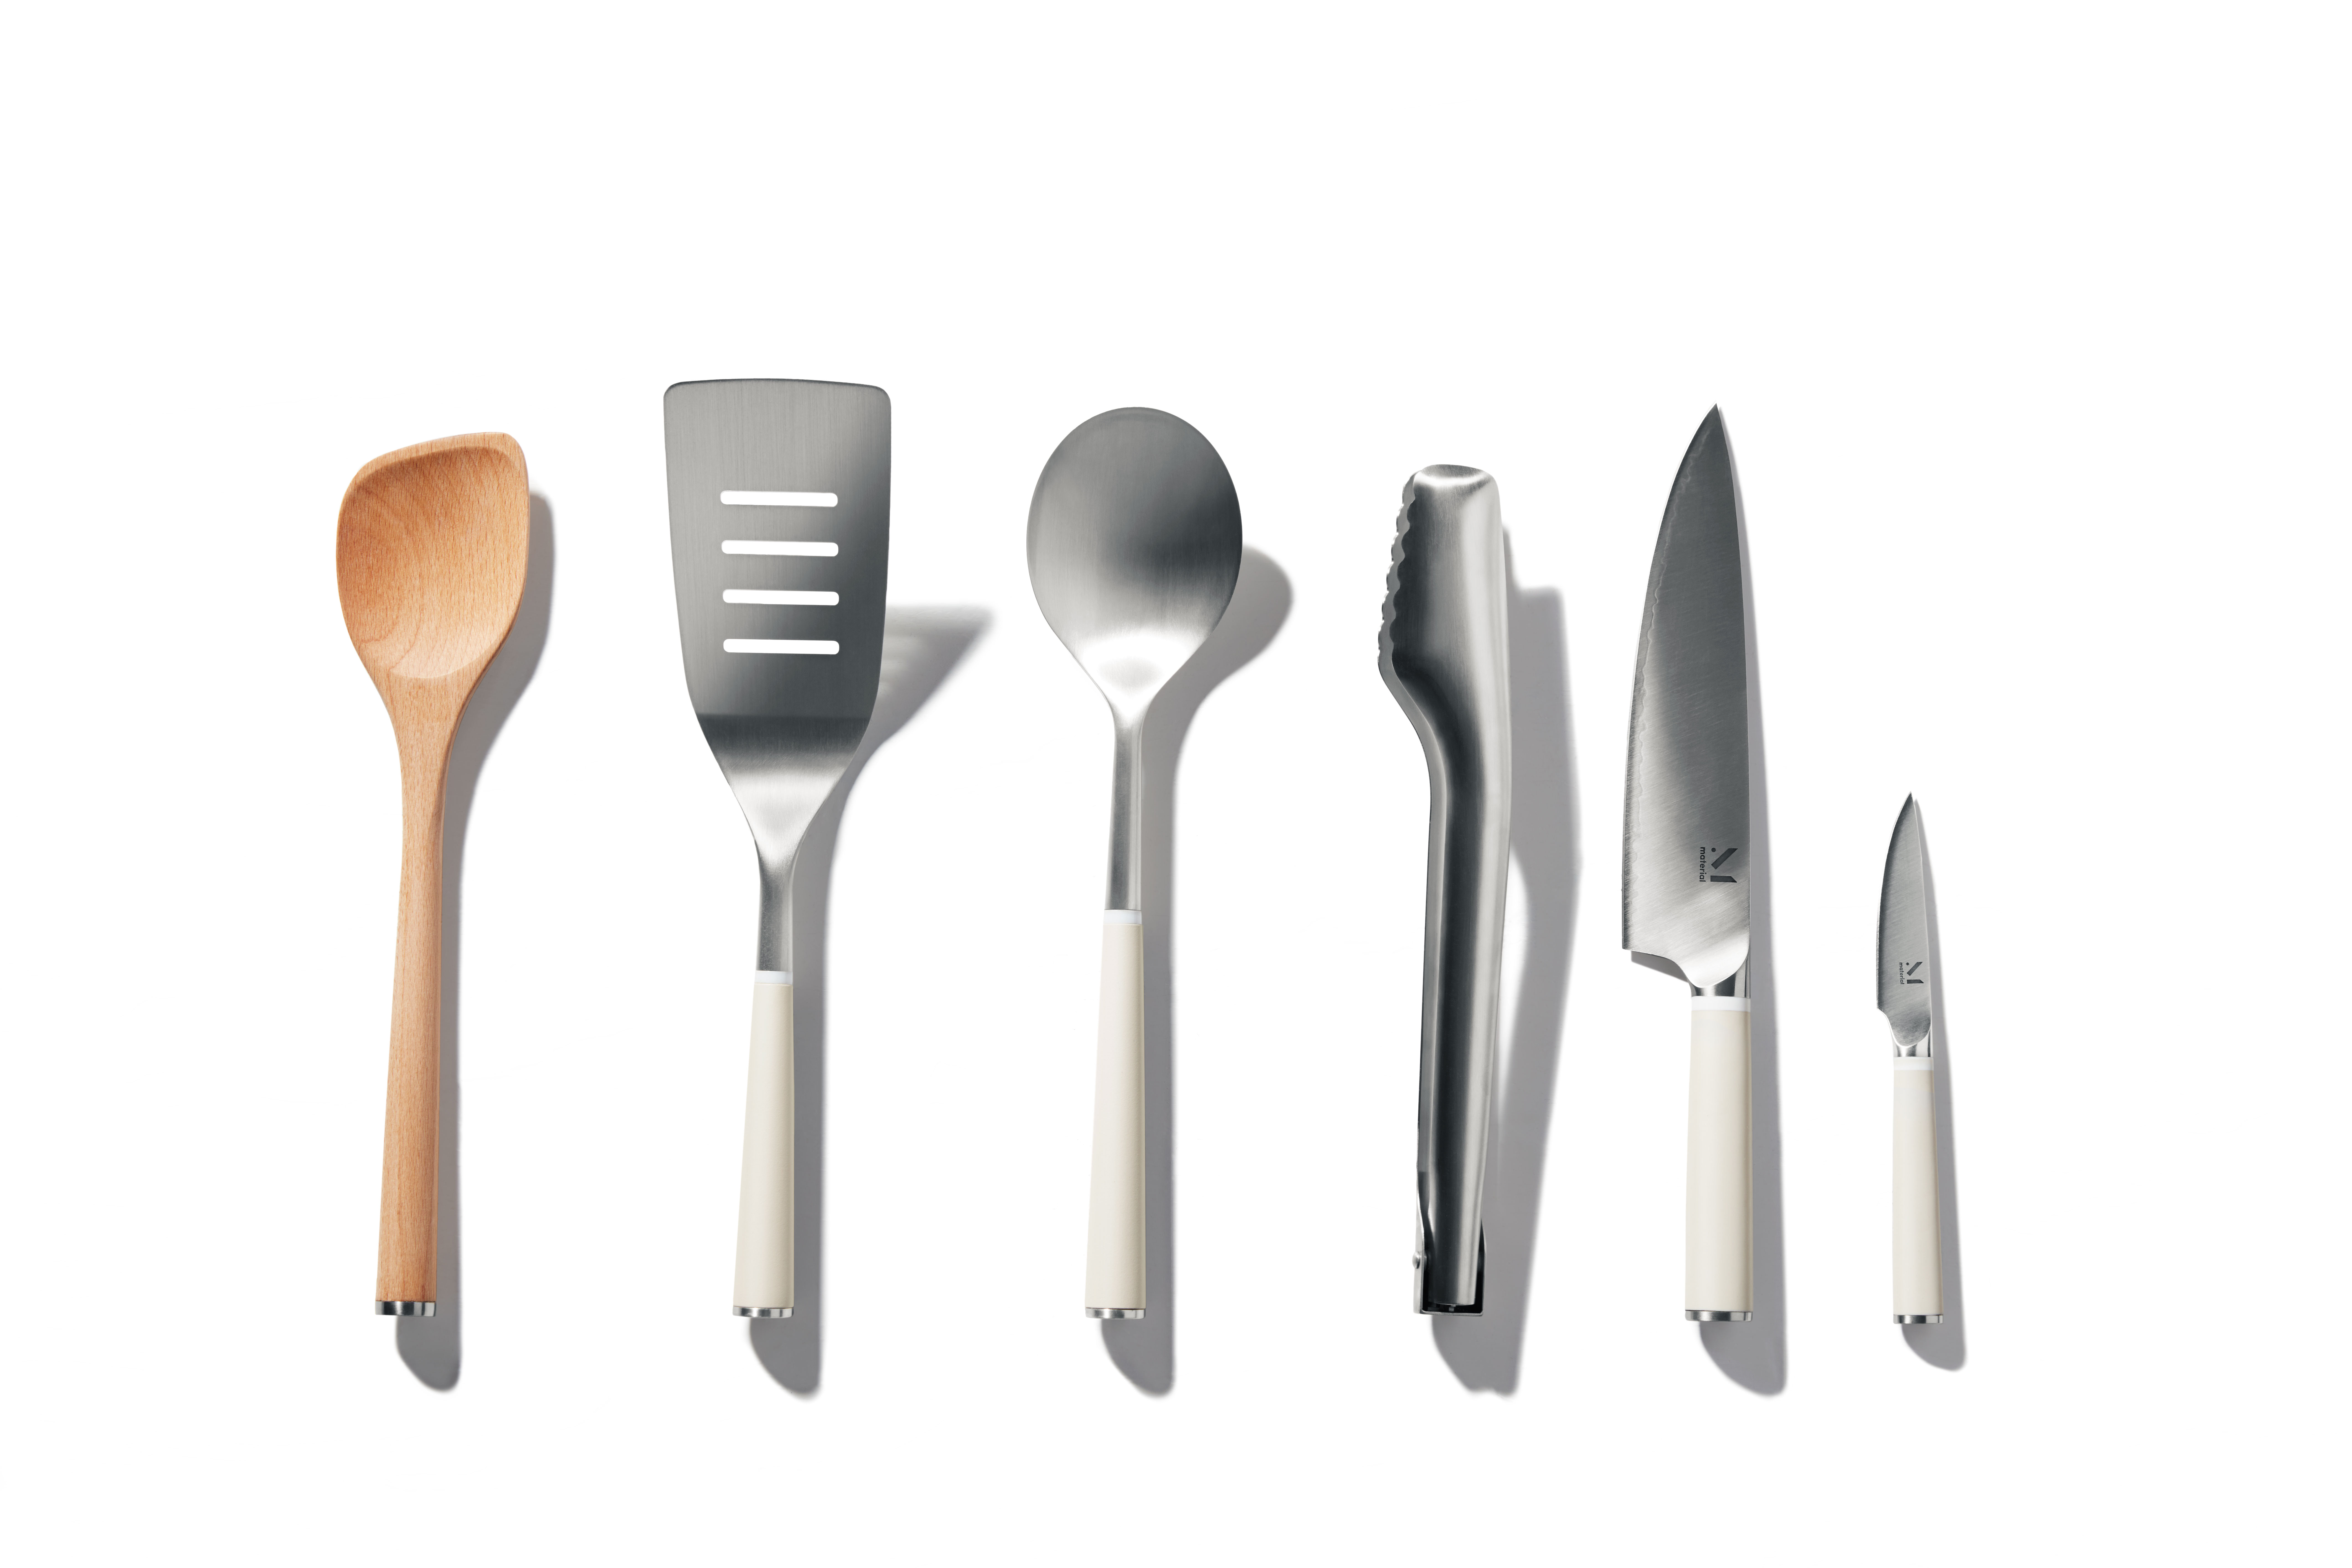 Kitchen Fundamentals Collection Mother's Day Gifts for the Foodie in Your Life - Material is a direct-to-consumer kitchenware brand whose products seamlessly blend functionality and design, and its products, which have been featured in Vogue and Gwyneth Paltrow's Goop are perfect for the mom who loves to cook and entertain. The company's fundamentals collection includes two knives, tongs, two spoons, a slotted spatula and a sleek base to store everything in.